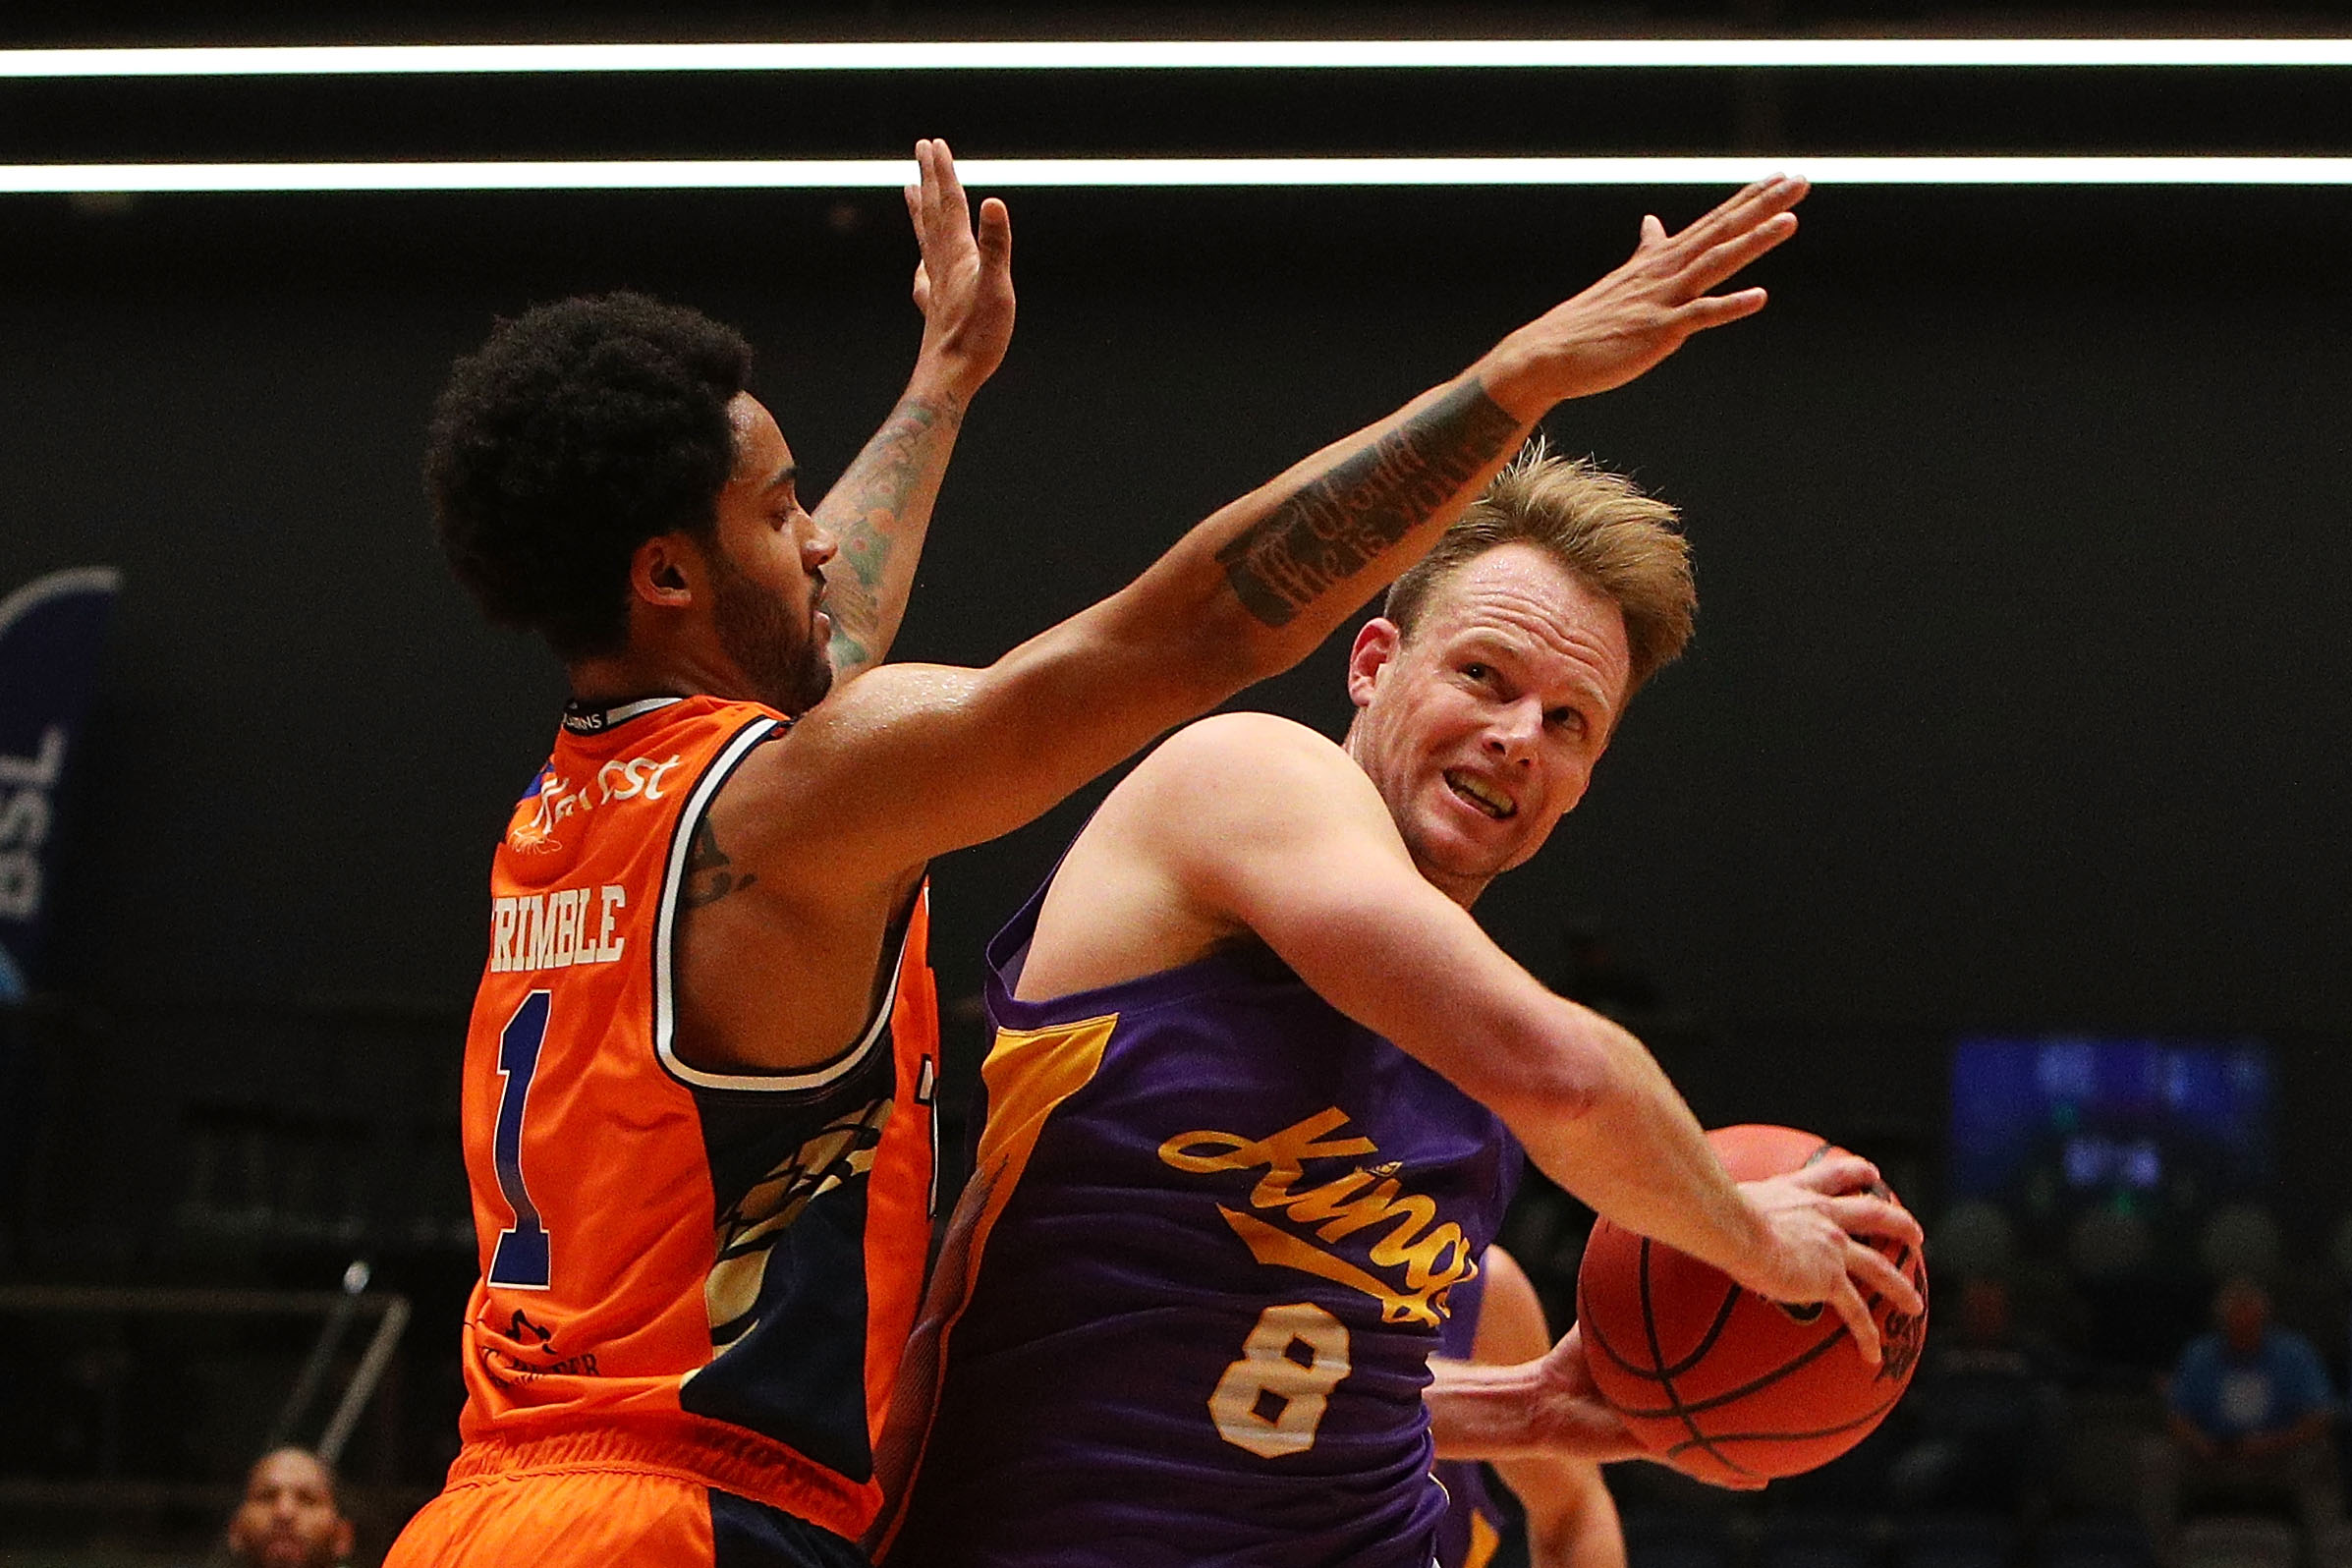 Sydney Kings Official Nationals Say Faulty Circuit Breaker Not Taylor Swift Caused Power Latest News 4 Mins Read Finish On Top Of The Table After Day 1 At Blitz